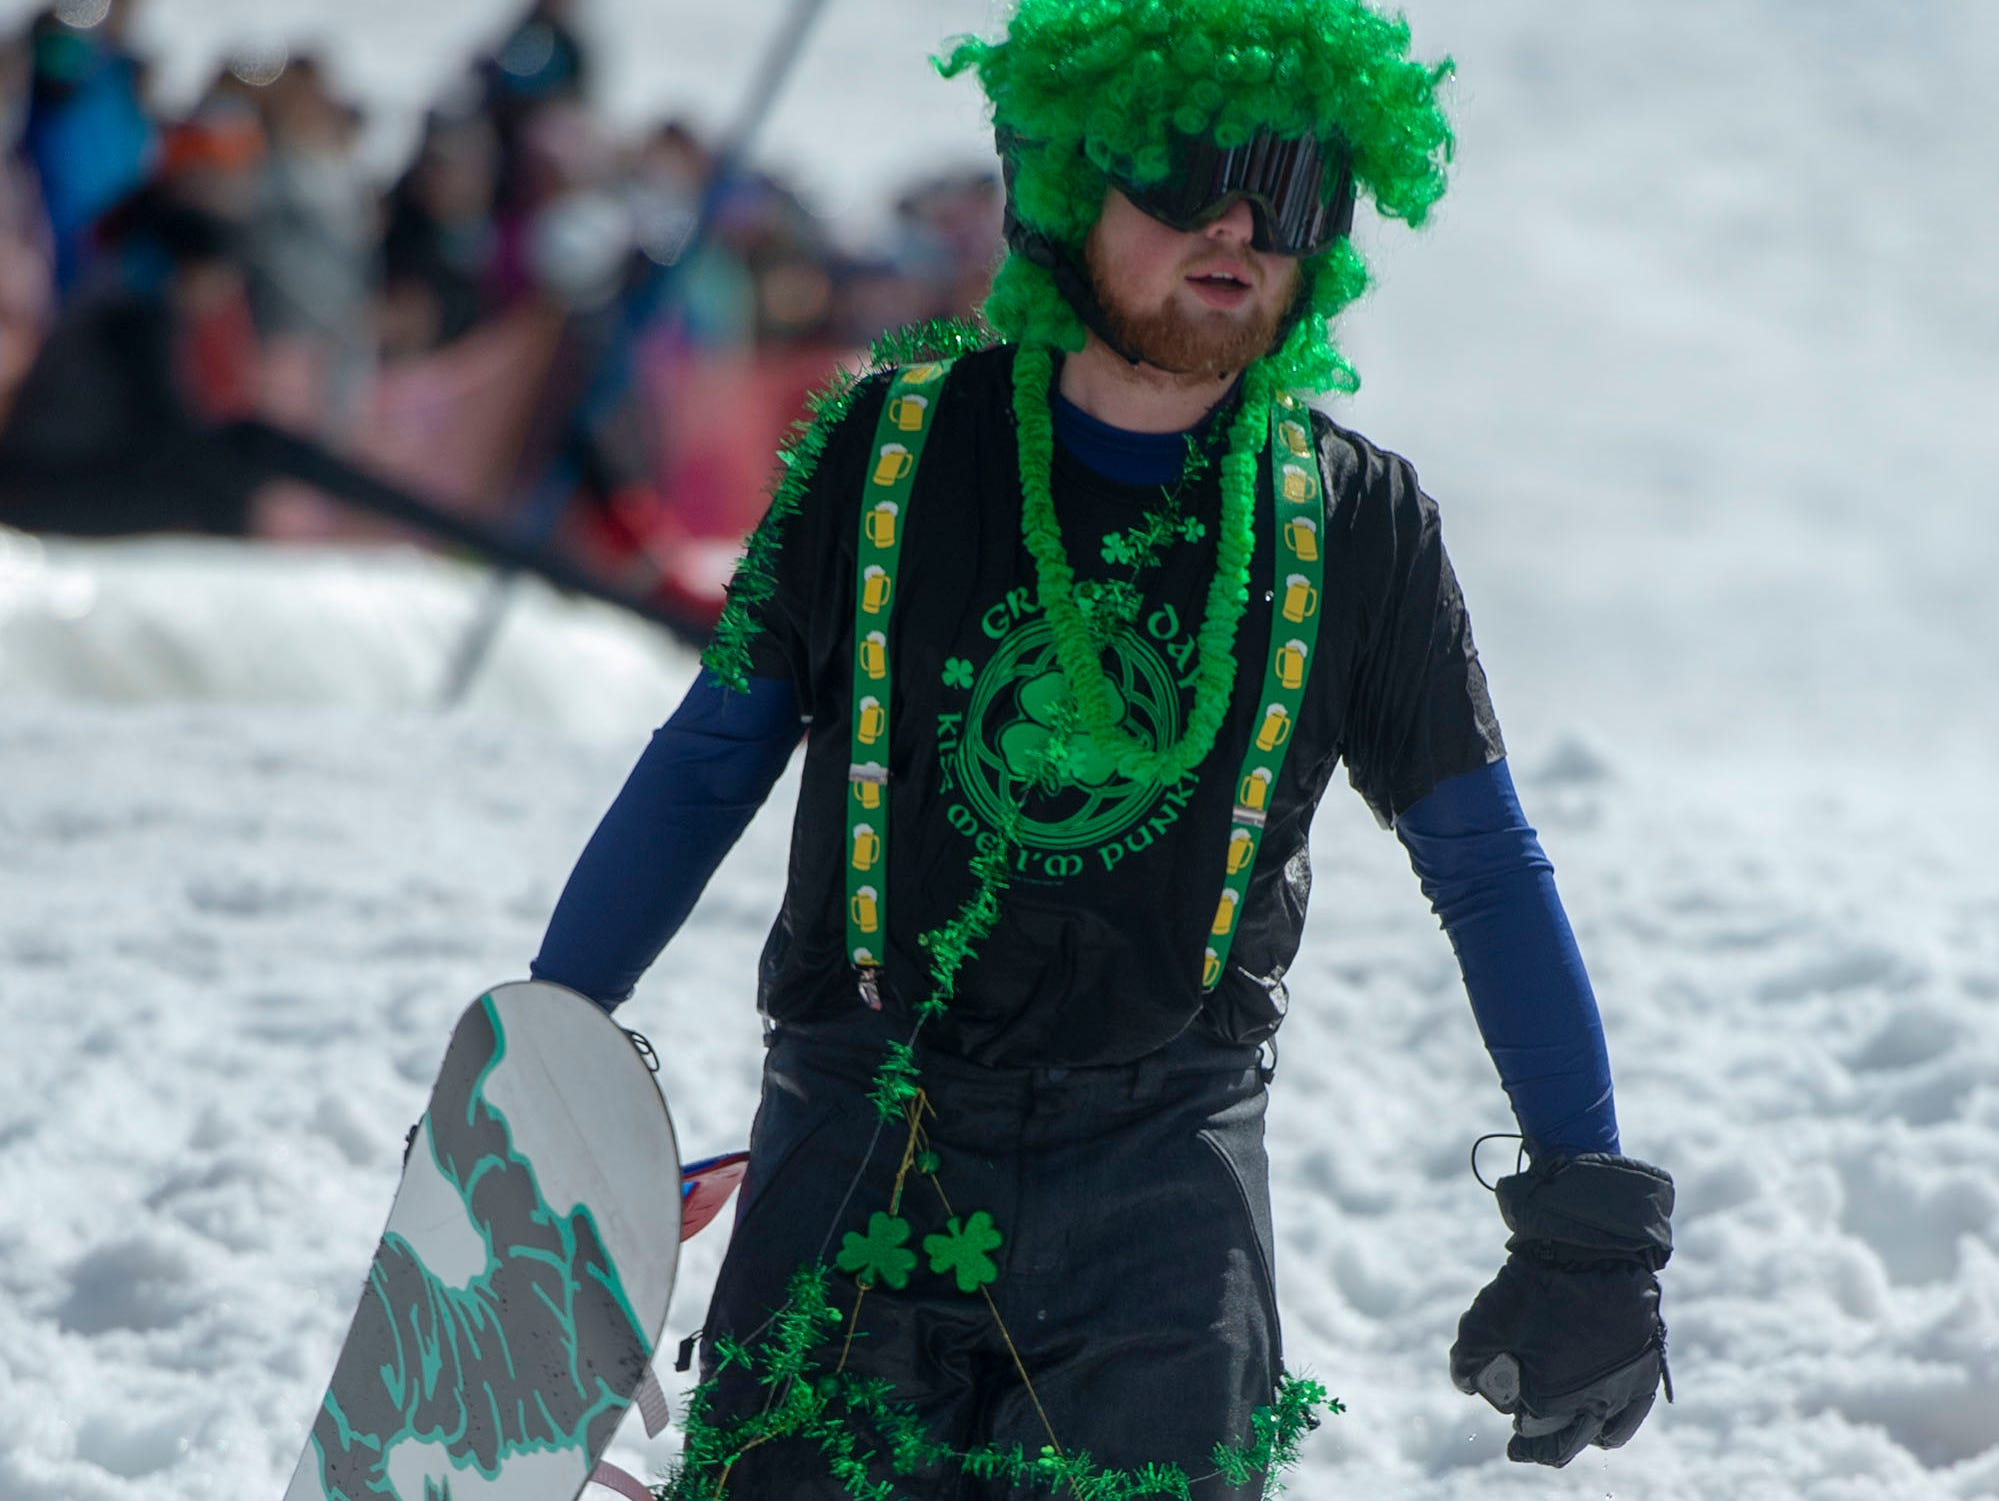 Throwing on some St. Patrick's Day decorations made for an easy costume at pond skimming at Roundtop Mountain Resort on Saturday, March 16, 2019.